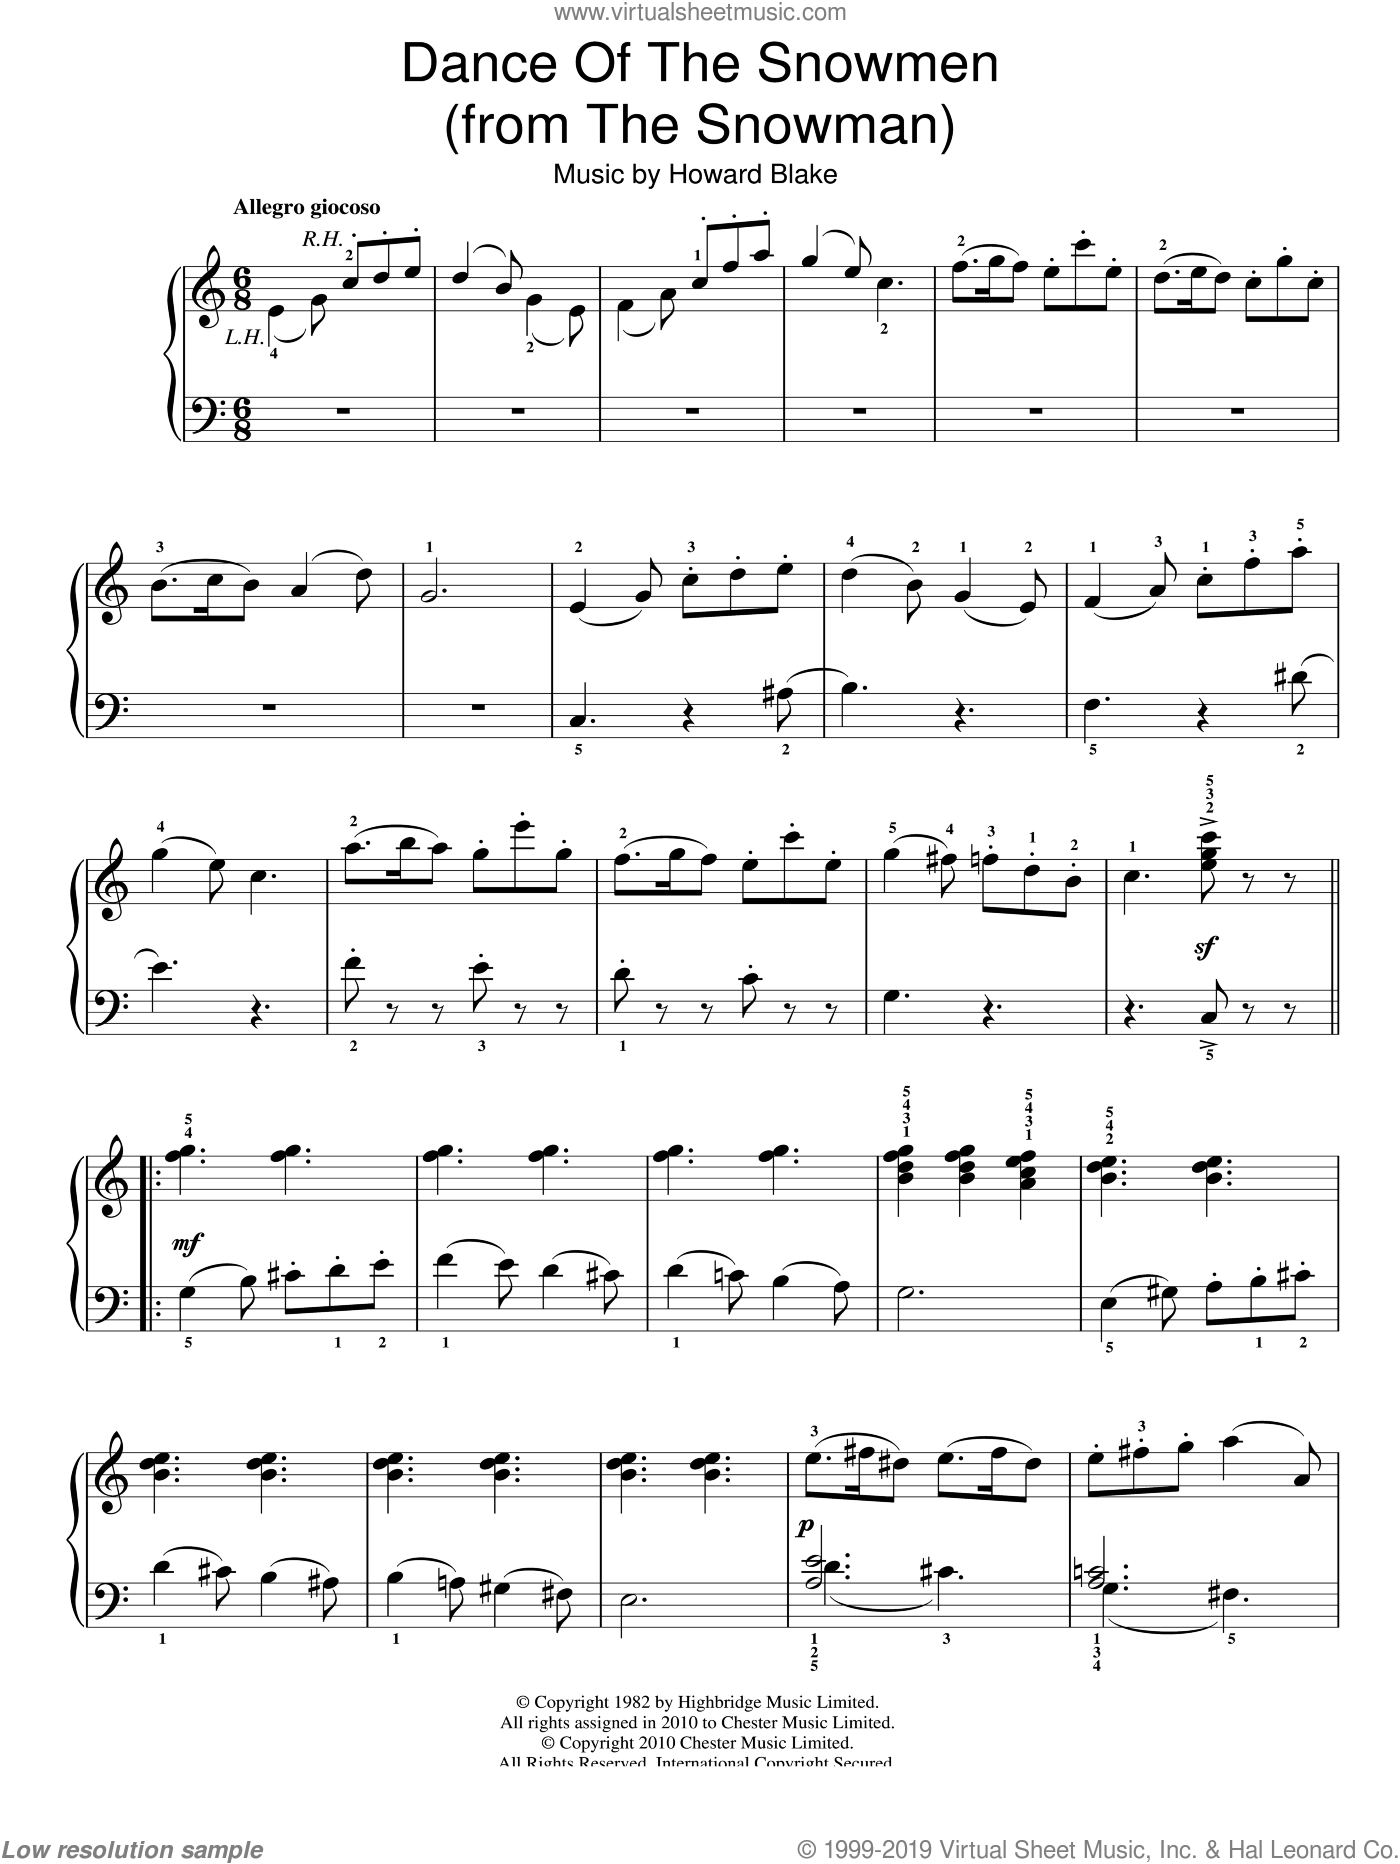 Dance Of The Snowmen sheet music for piano solo by Howard Blake